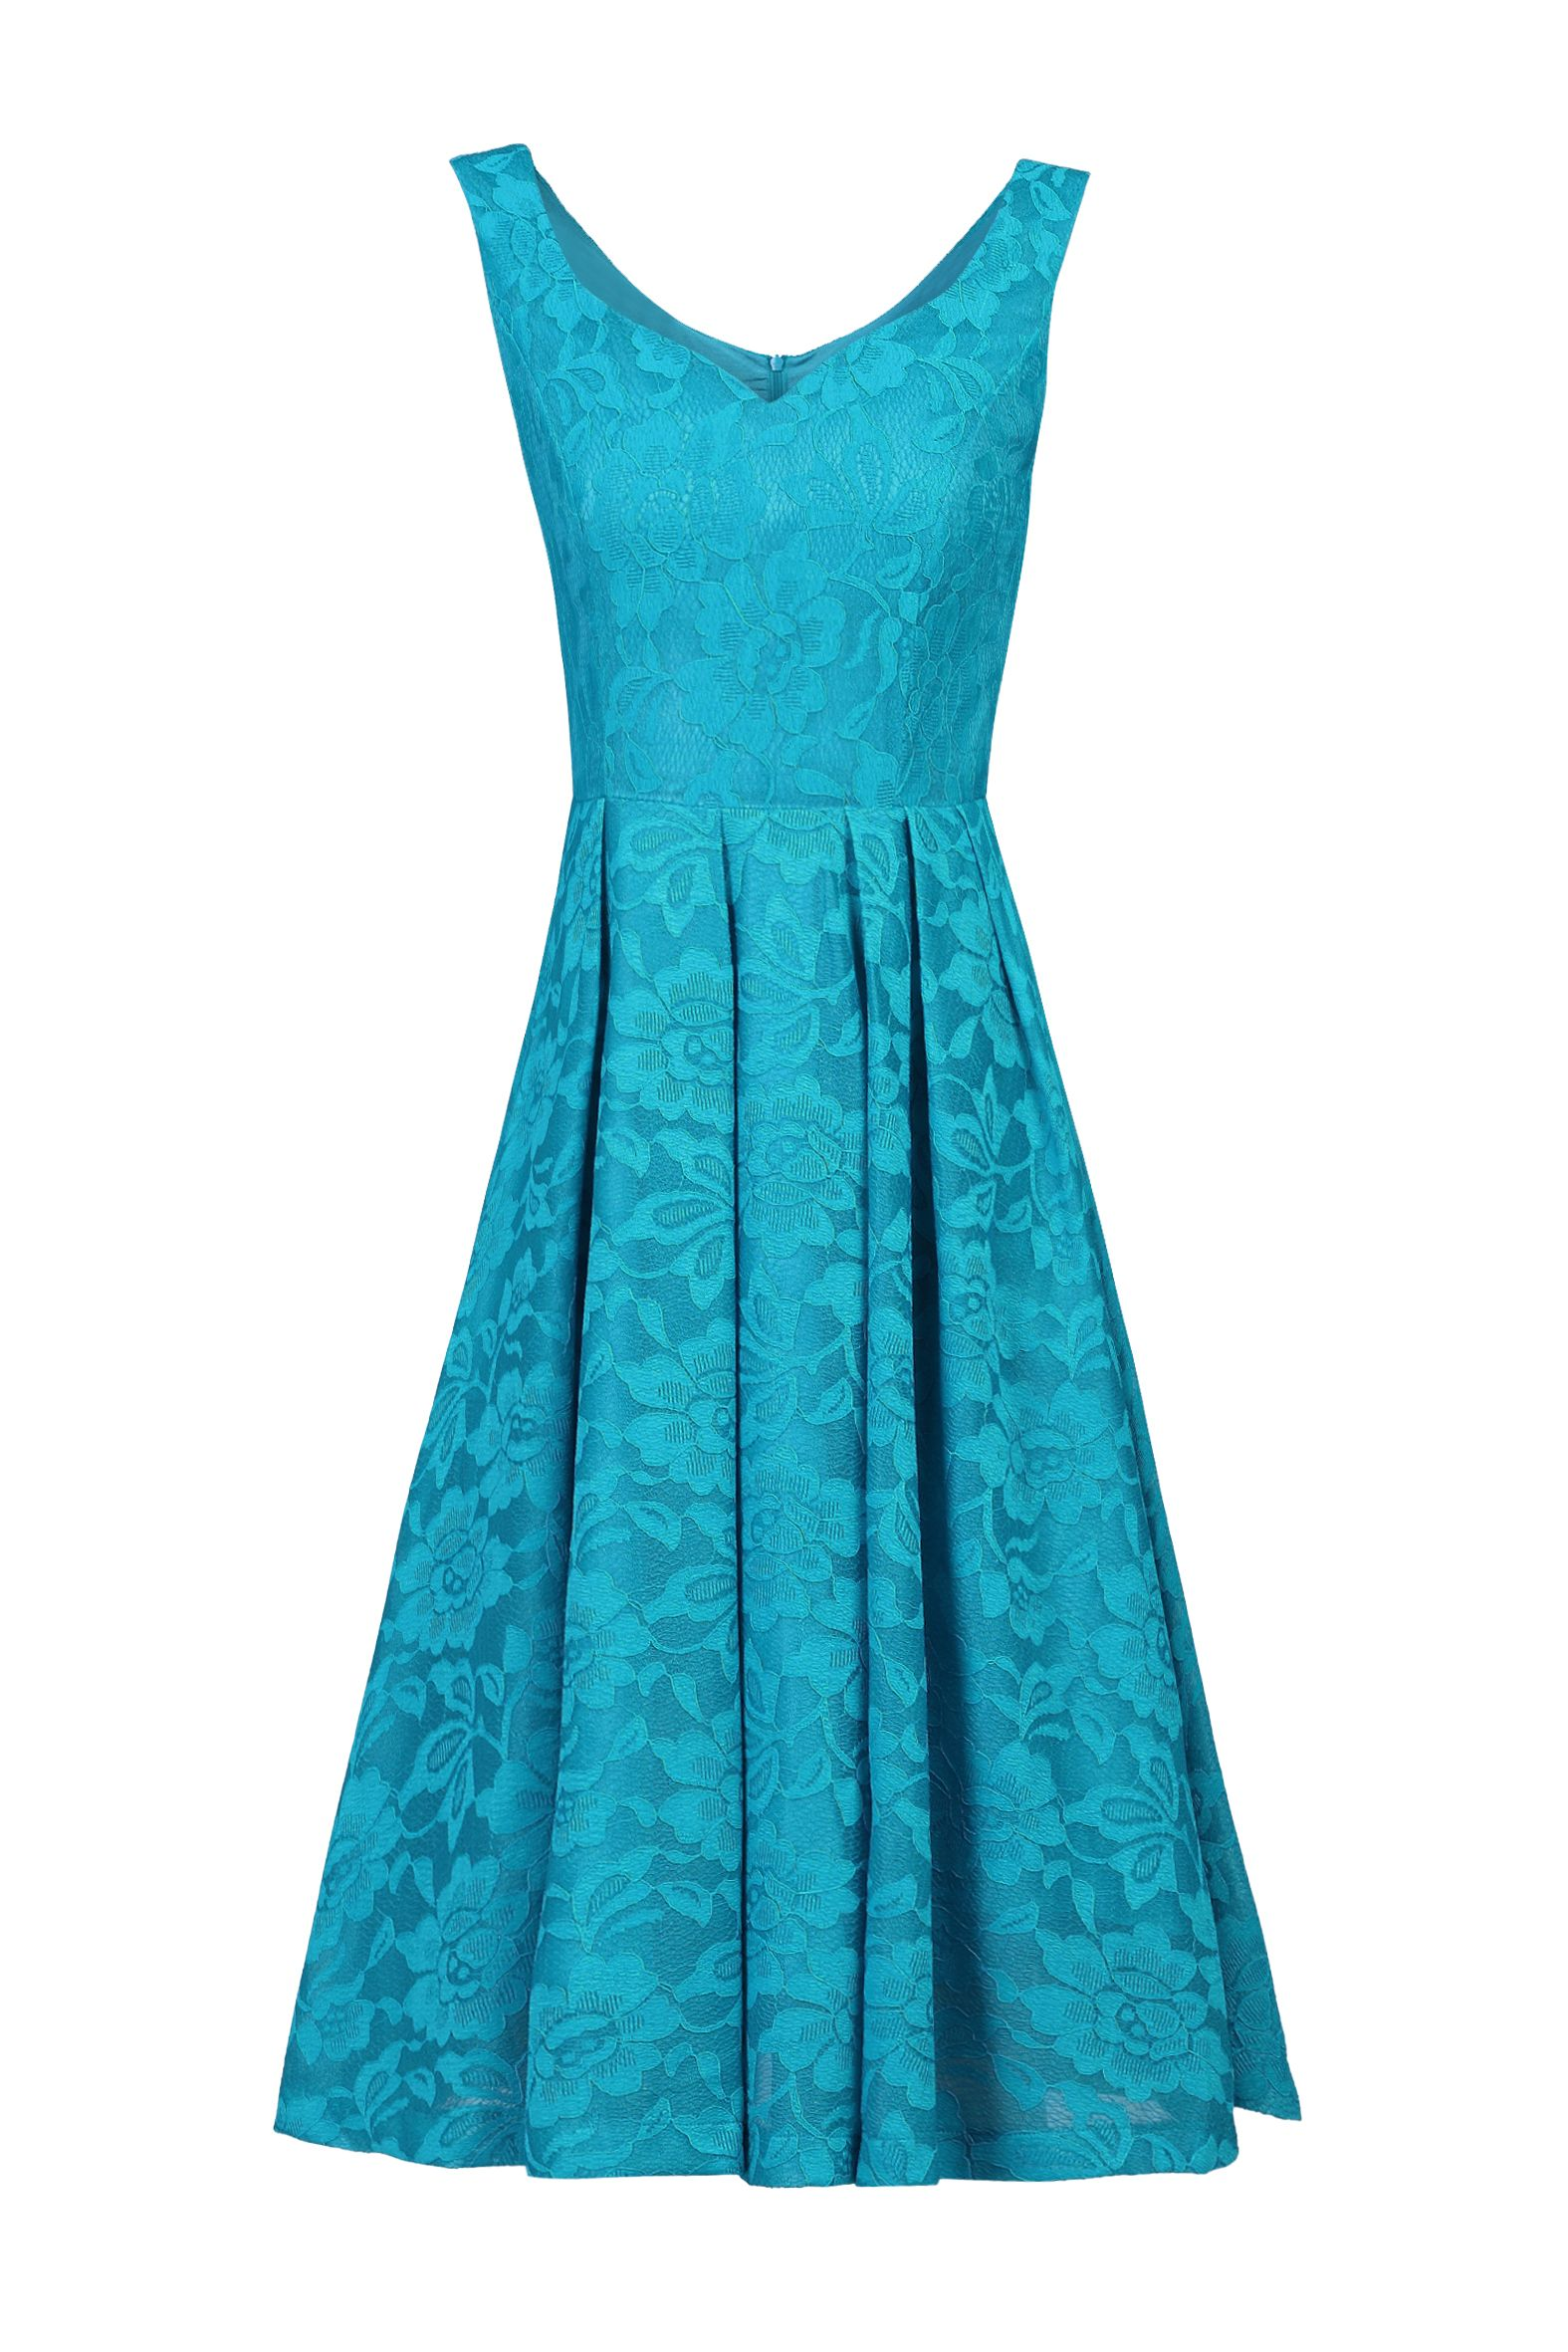 Jolie Moi Lace Bonded Sweetheart Neck Dress, Teal